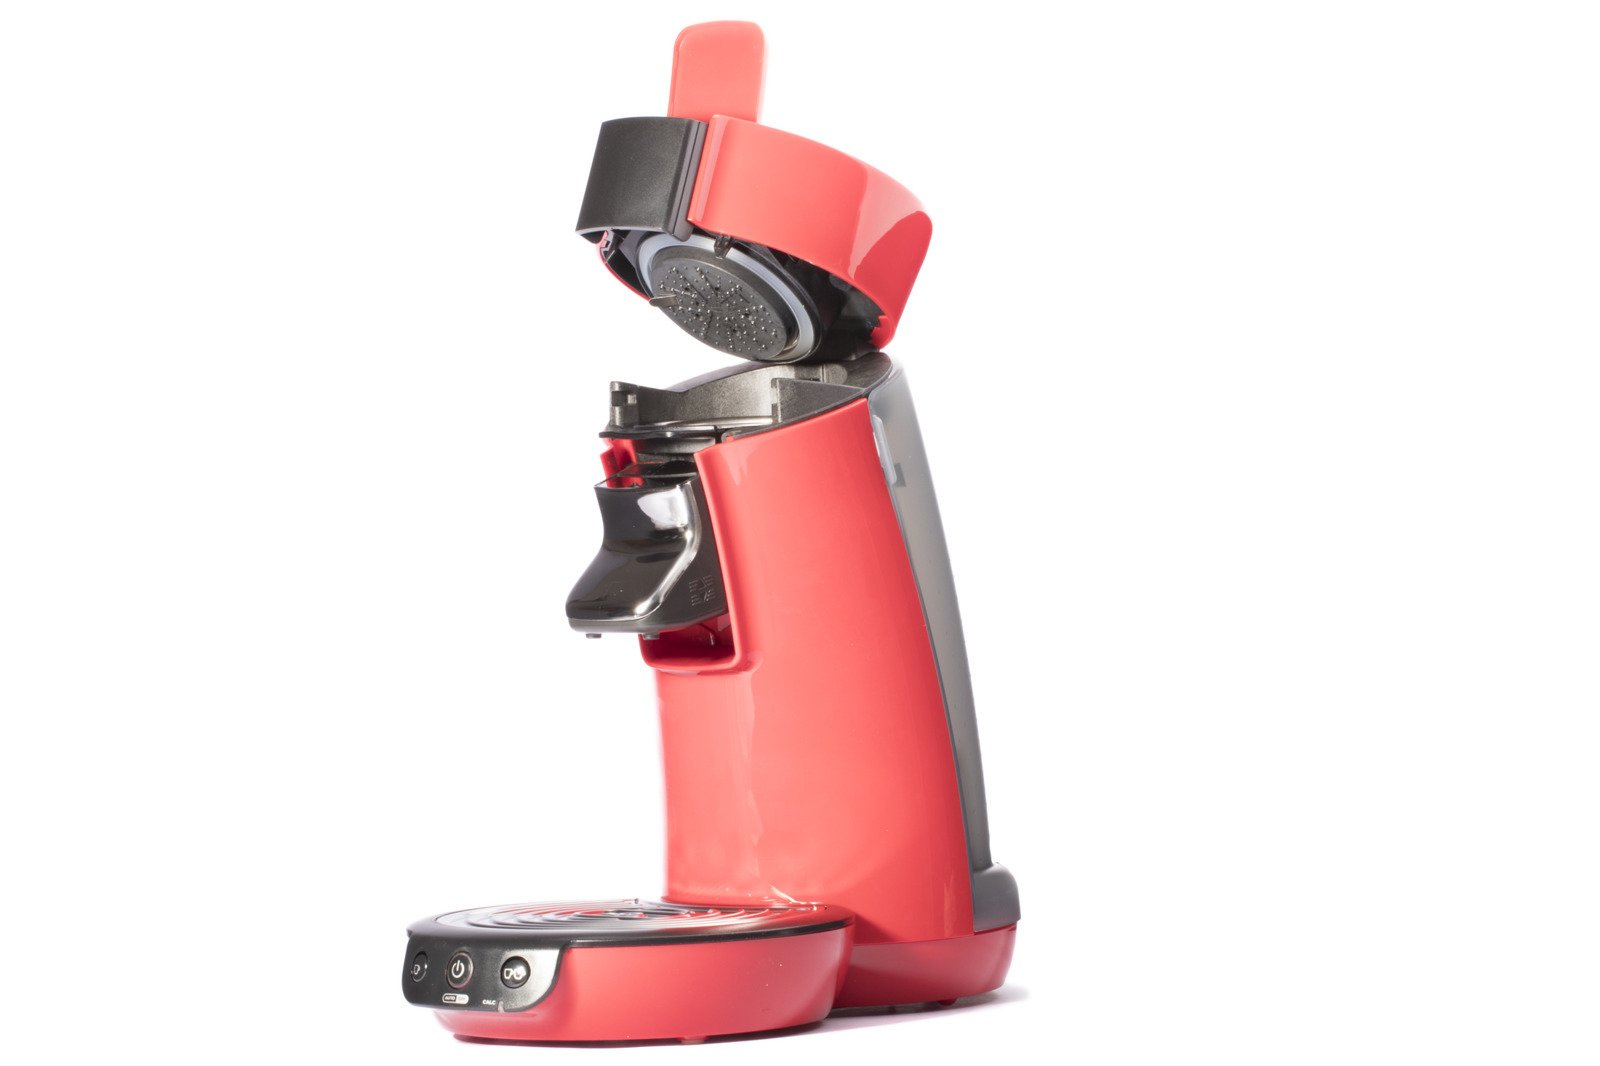 philips senseo hd7829 coffe machine 2 cup red house and garden coffee express dropmax. Black Bedroom Furniture Sets. Home Design Ideas